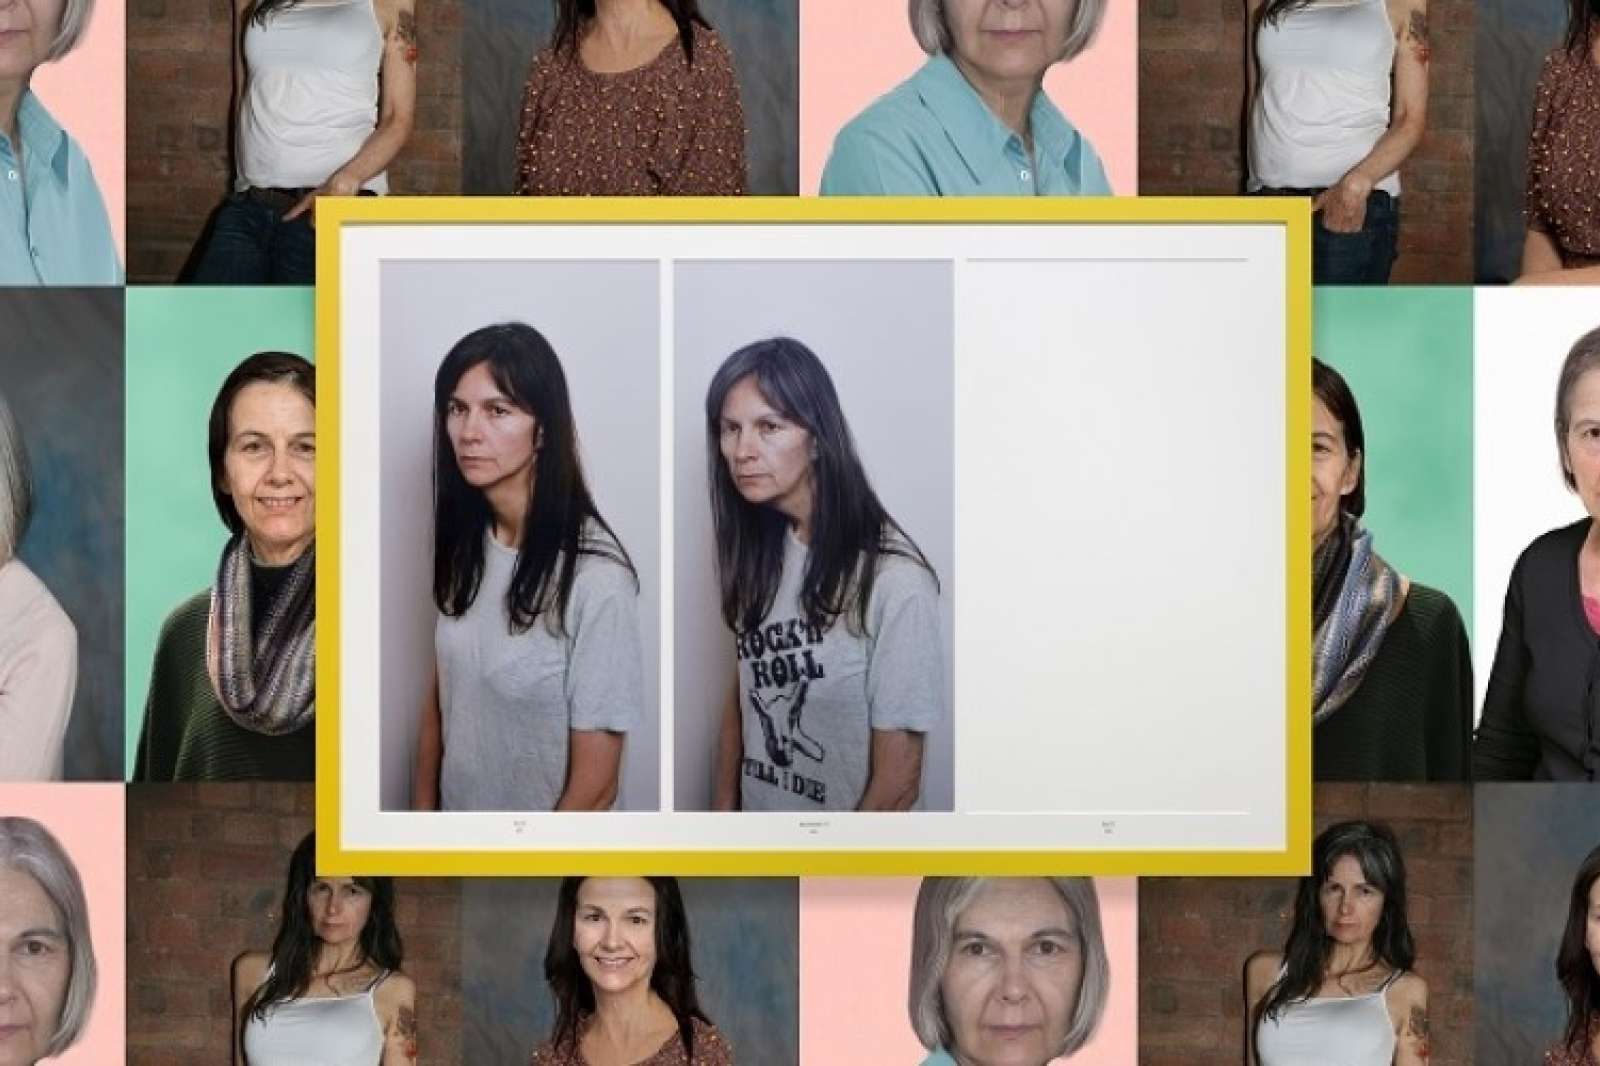 "Gillian Wearing, Rock 'n' Roll 70, 2015. Framed c-prints, 48 x 72"", Courtesy of the artist and Tanya Bonakdar Gallery. Background image: Gillian Wearing, Wallpaper, 2015, dimensions variable, courtesy of the artist and Tanya Bonakdar Gallery."